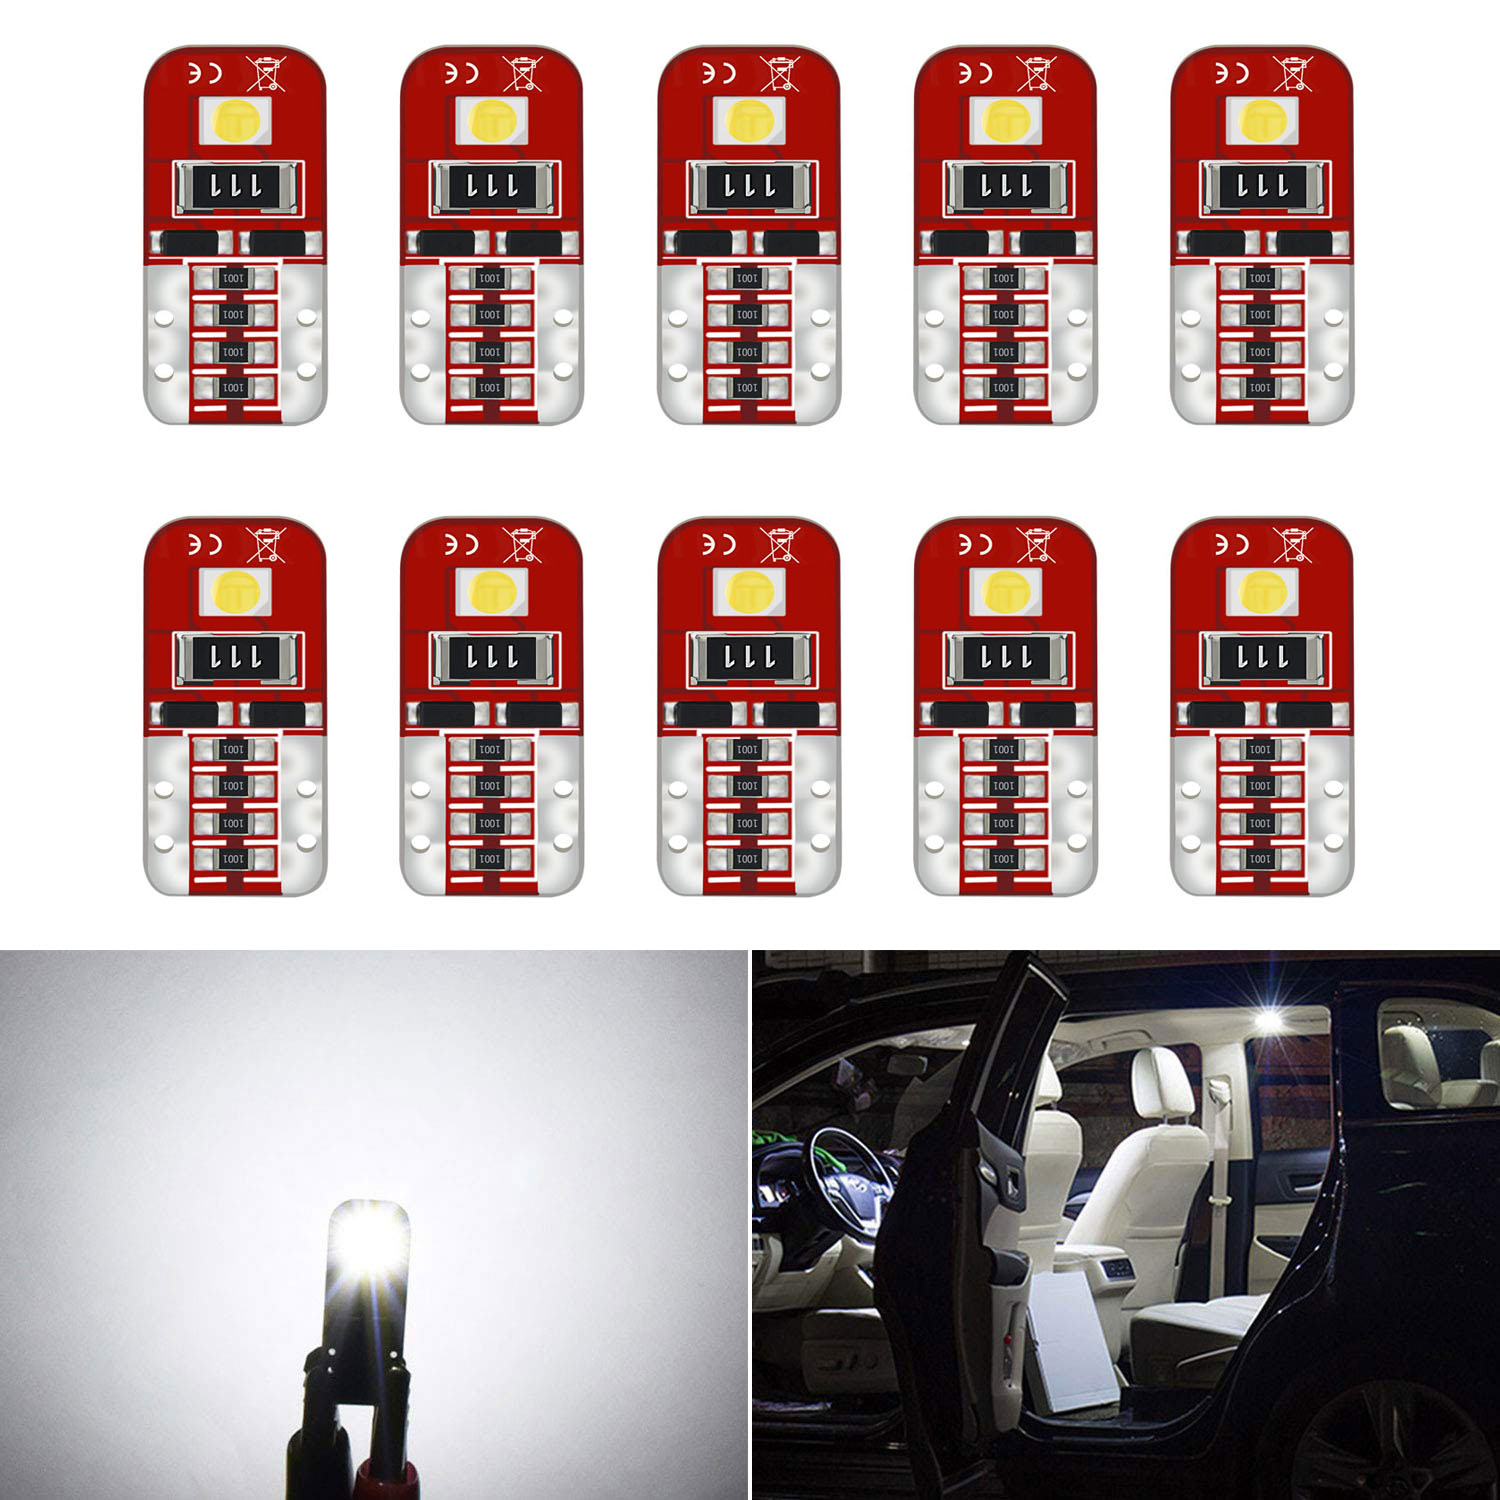 10Pcs <font><b>Canbus</b></font> <font><b>T10</b></font> W5W <font><b>LED</b></font> Bulb Car Interior Lights For Volkswagen <font><b>VW</b></font> Amarok Beetle Beetle Cabrio Cabrio Caddy CARAVELLE Clasico image